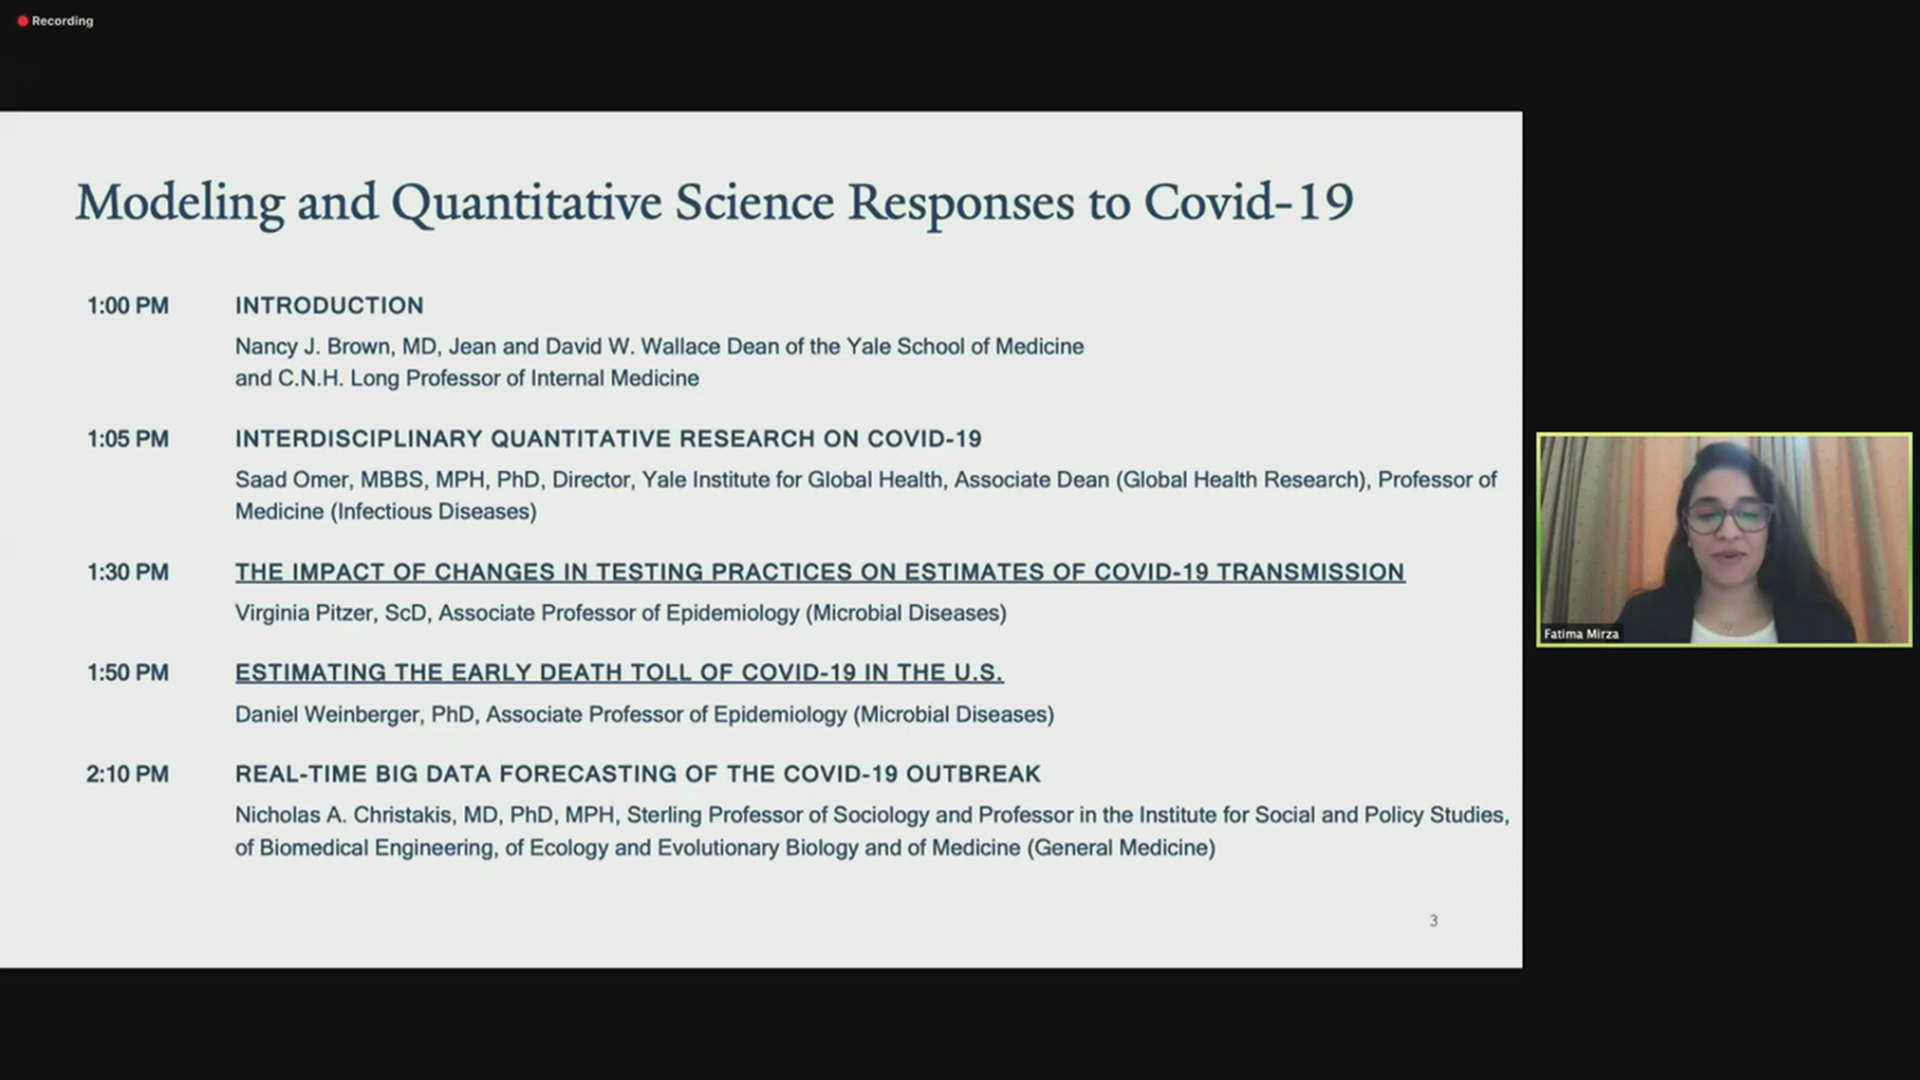 Introduction: Yale's Modeling and Quantitative Science Response to the COVID-19 Pandemic